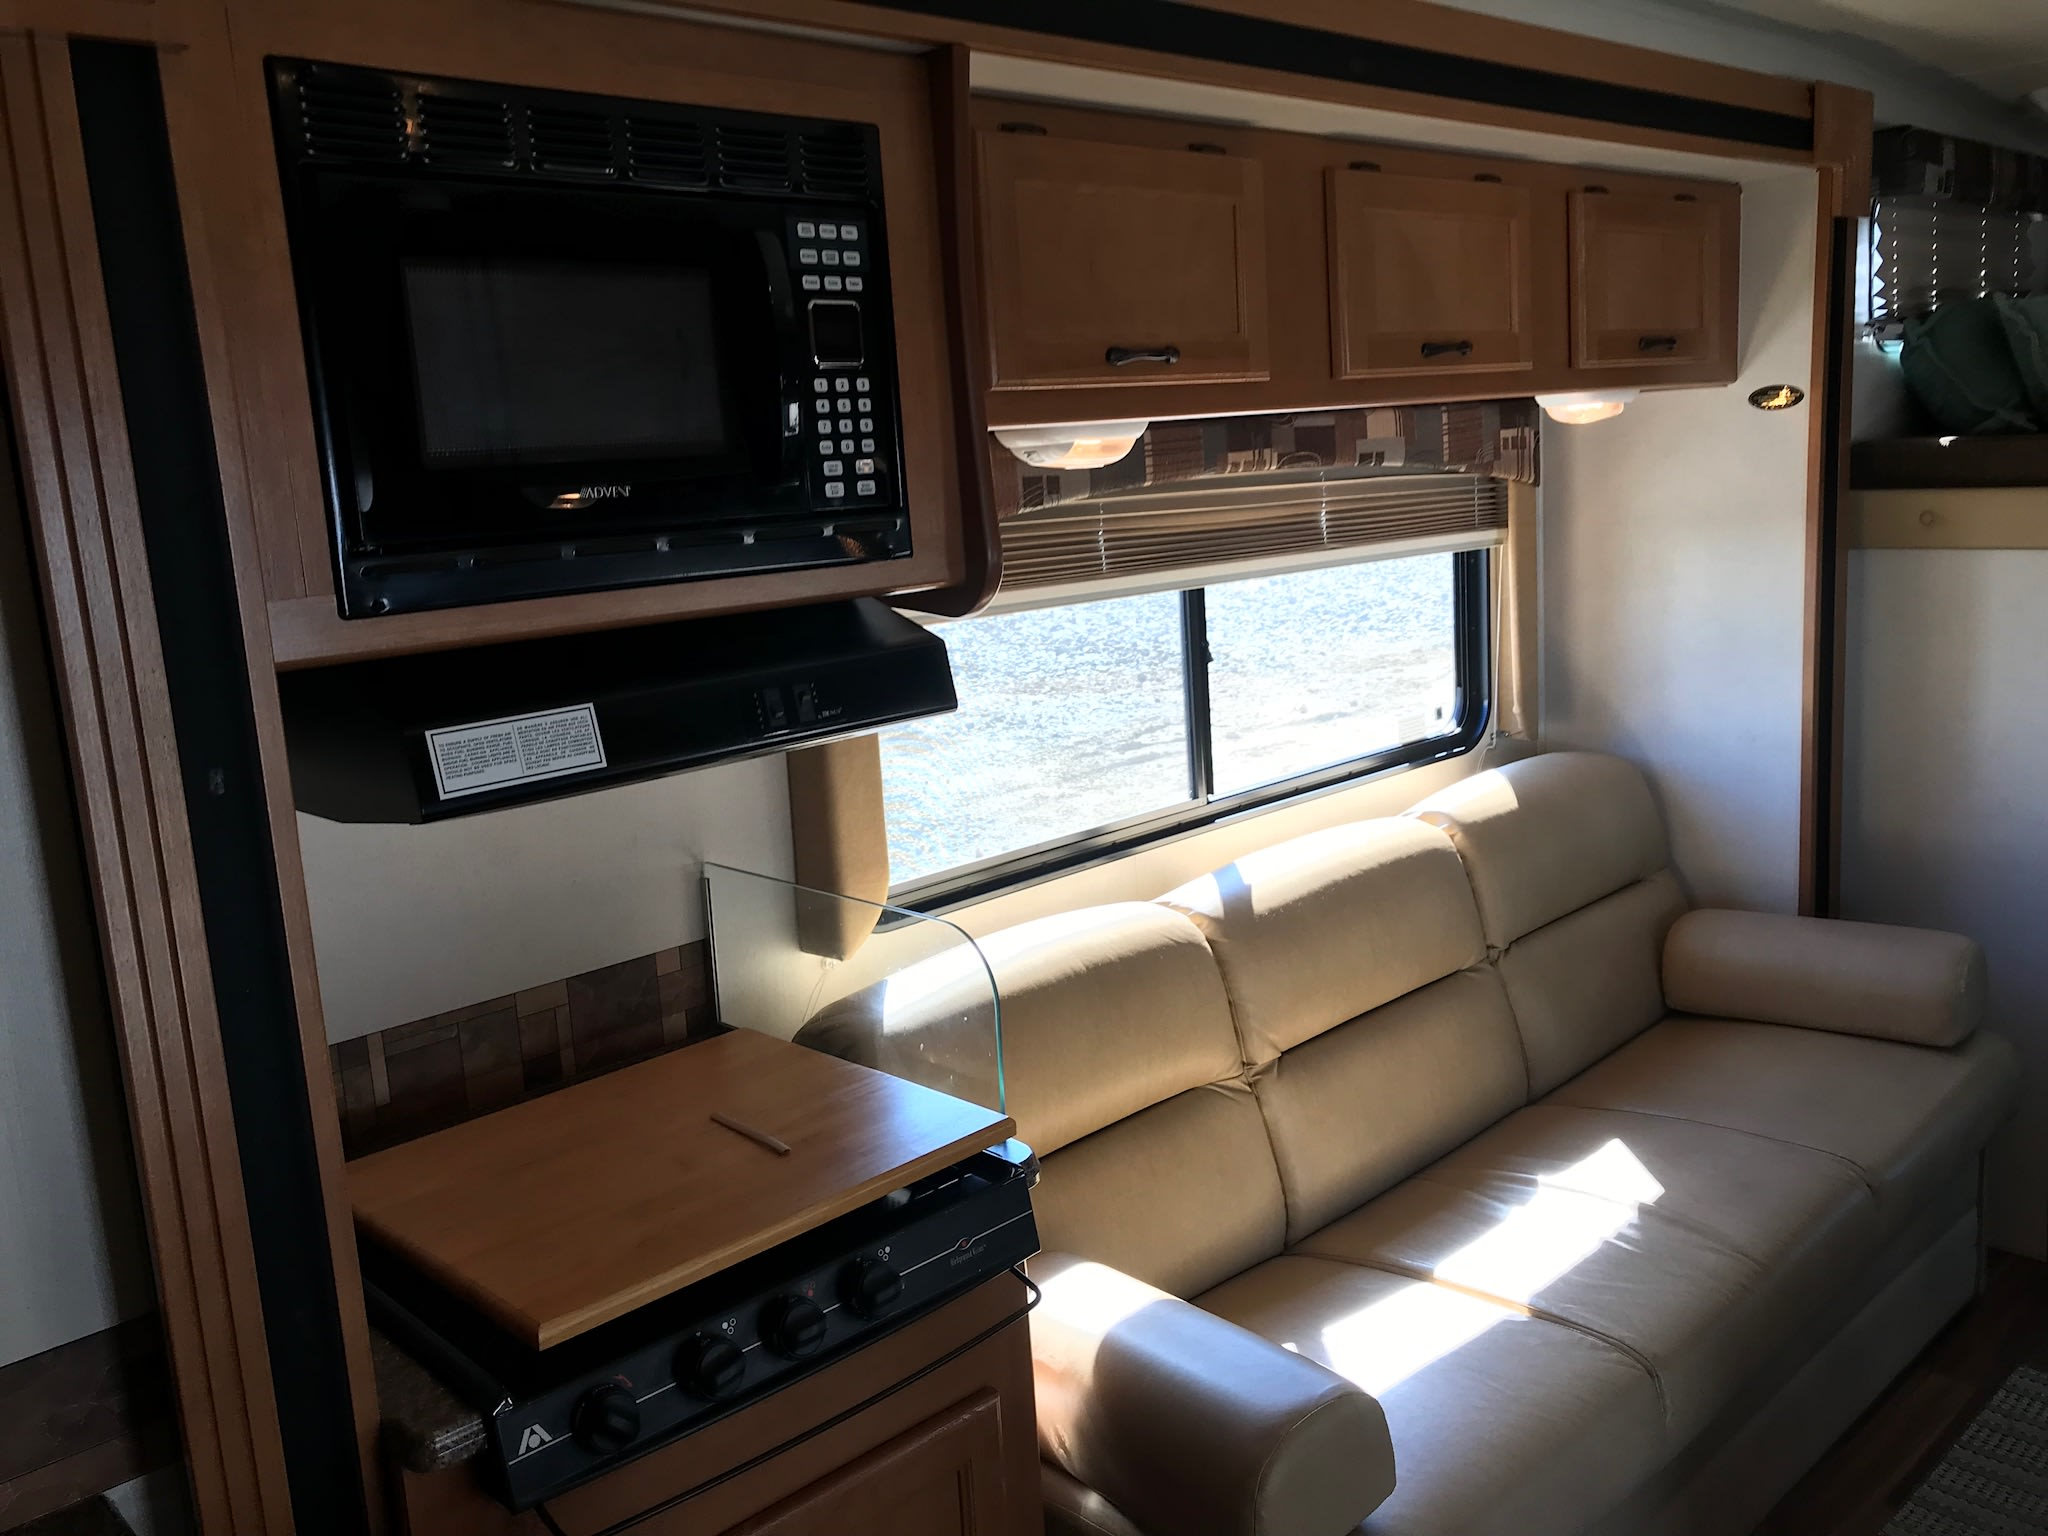 Stove top, Microwave, Sofa. Coachmen Freelander 2013